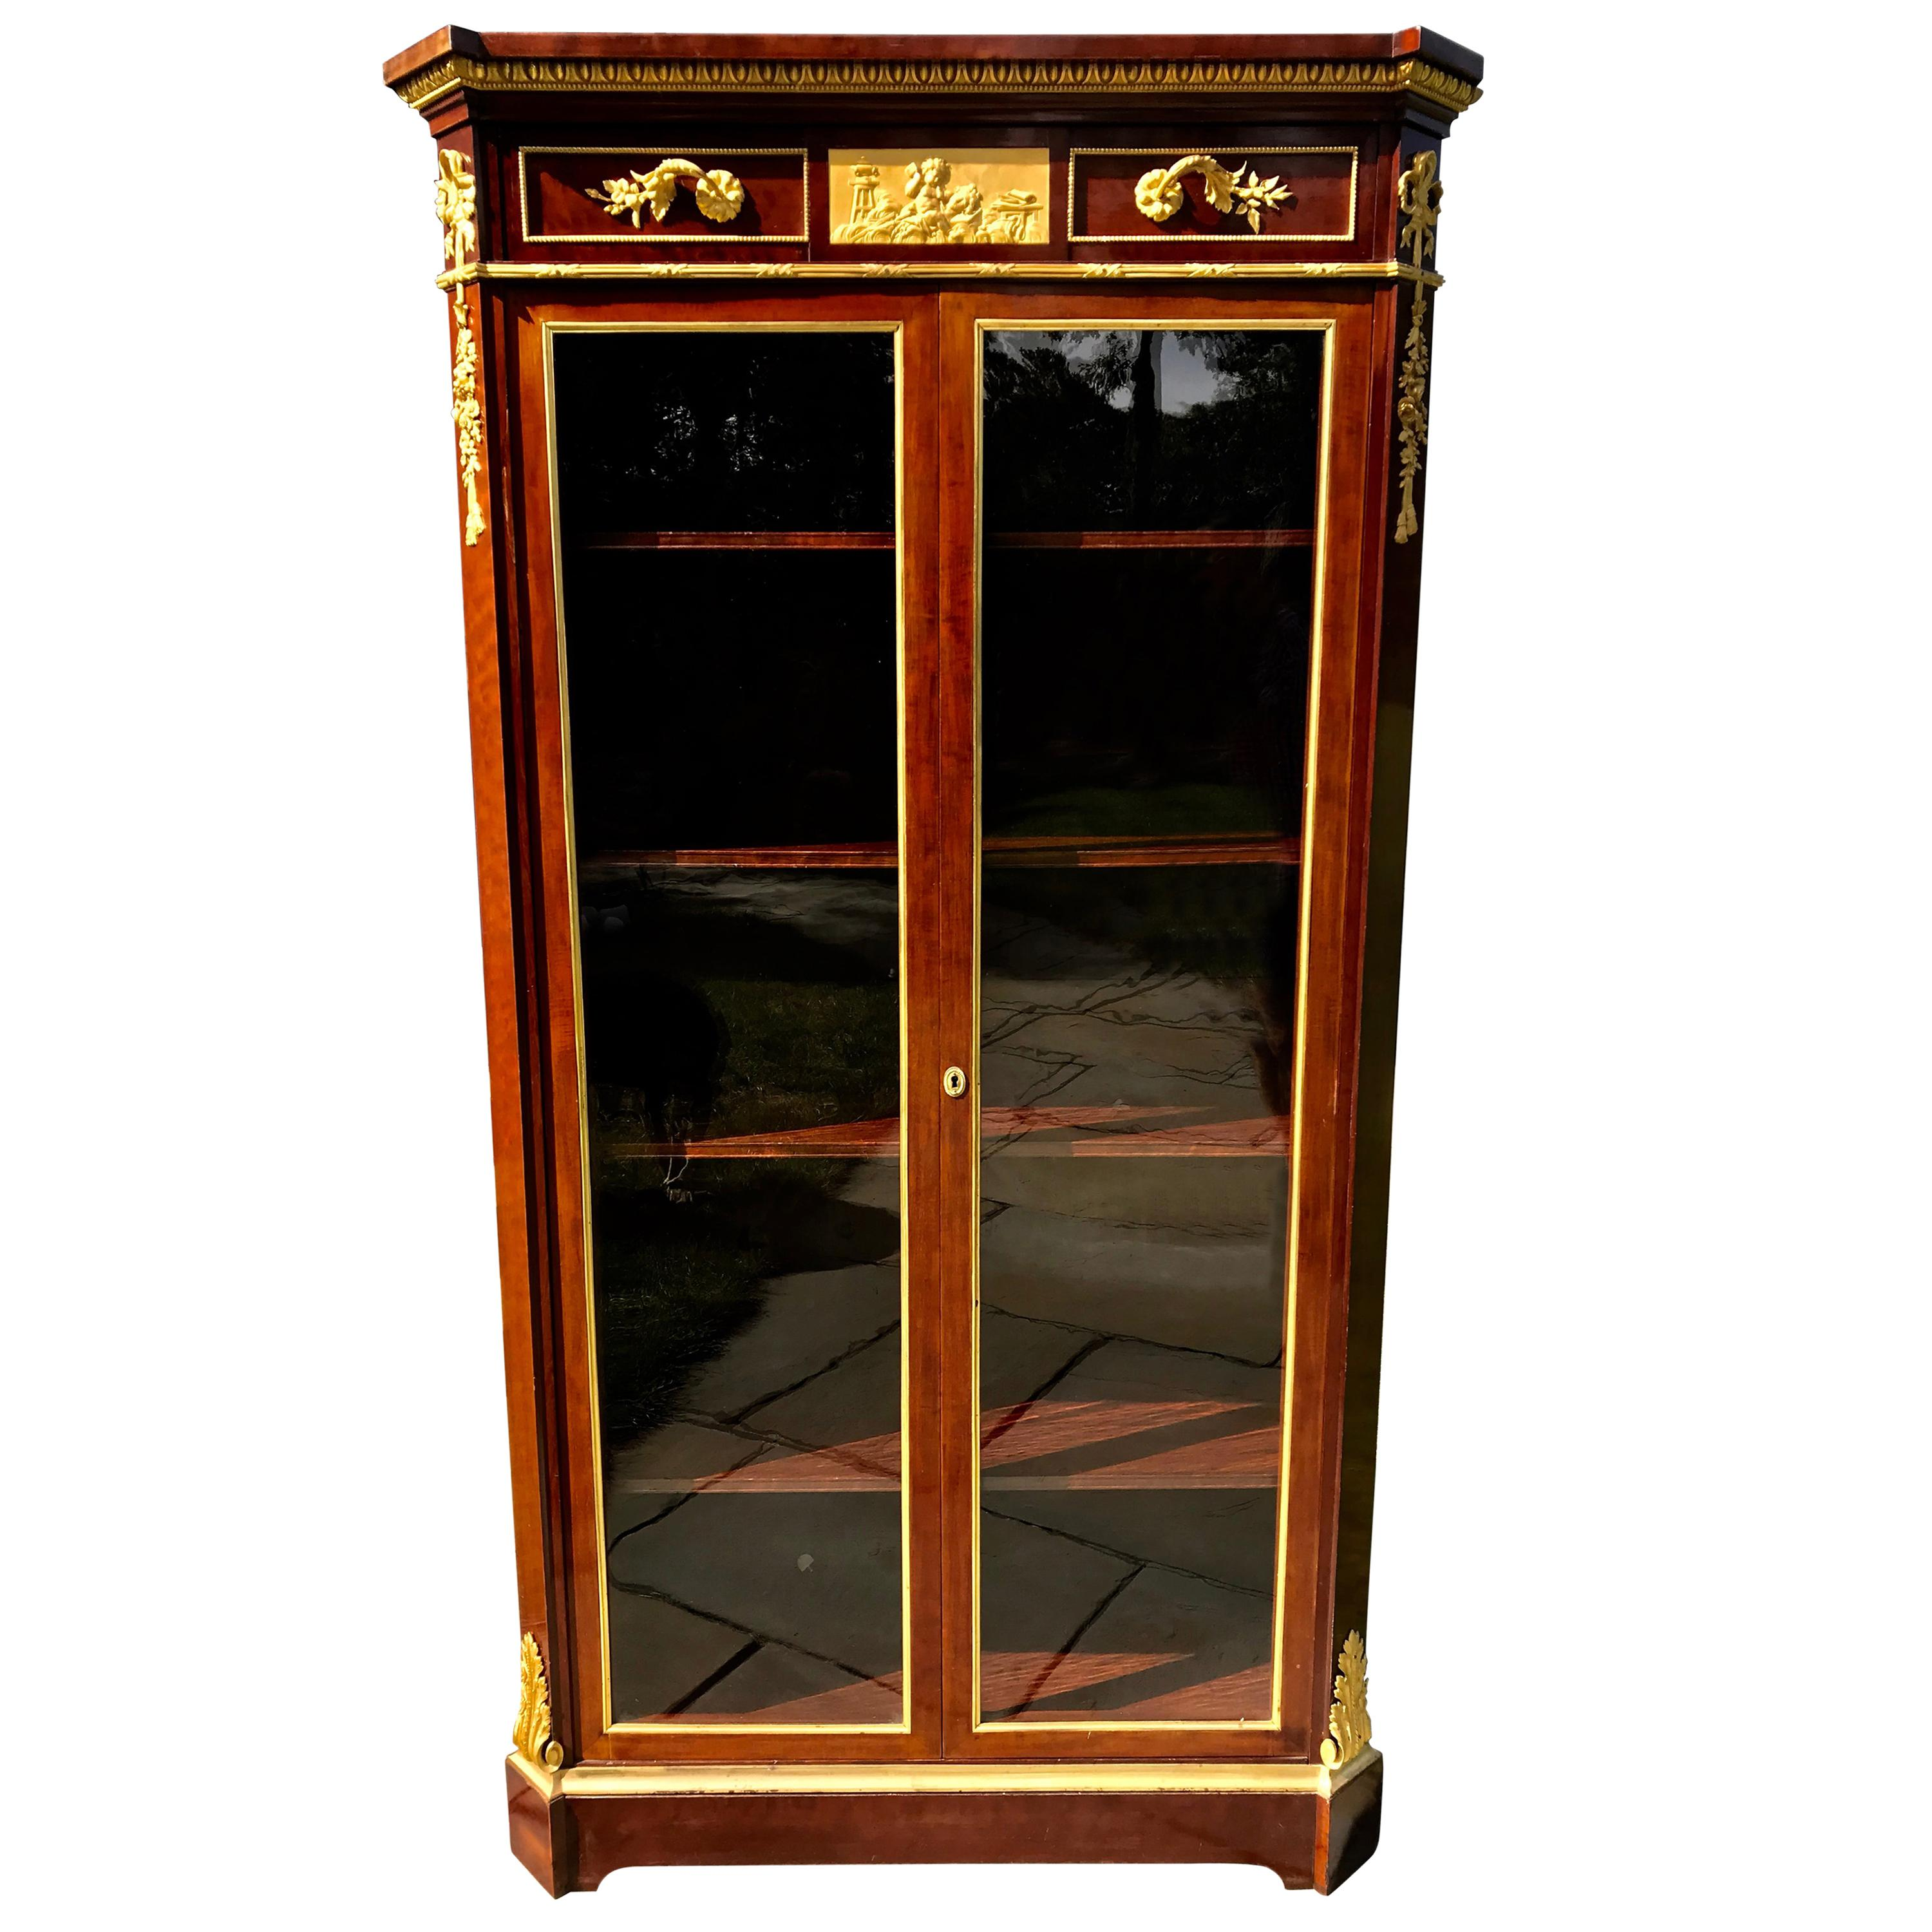 Mahogany Display Cabinet signed Beurdeley